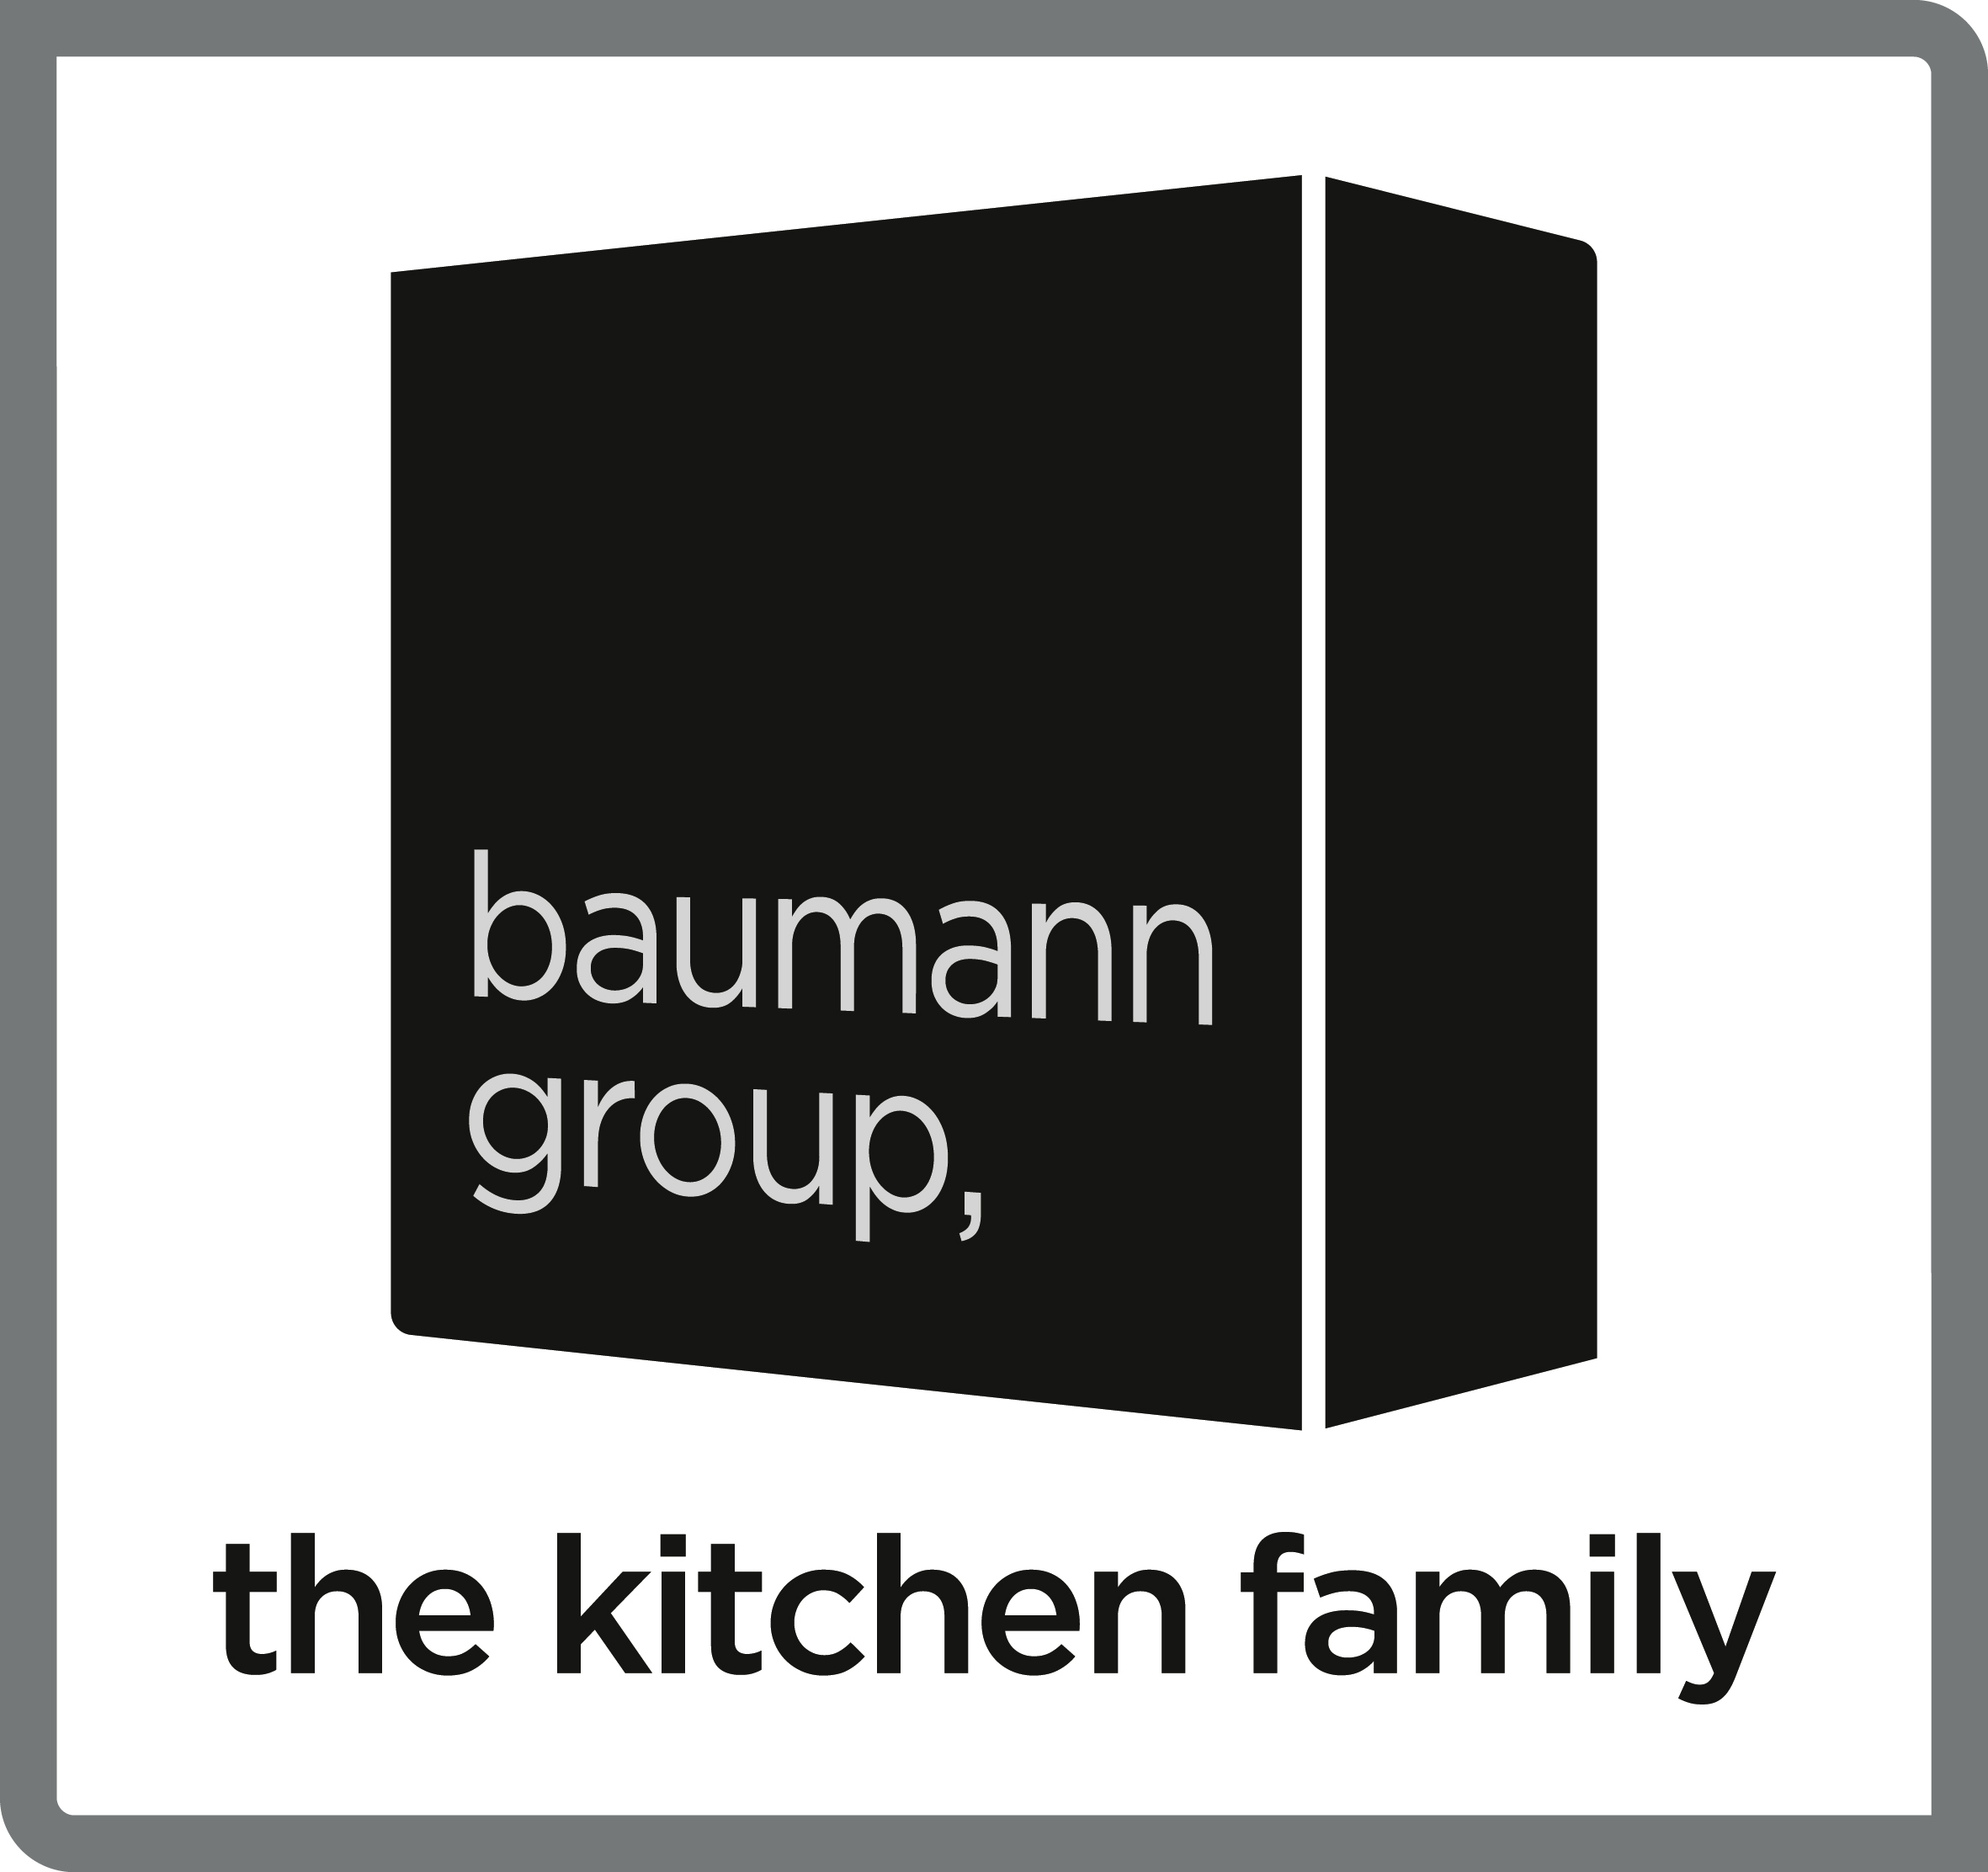 Baumann group